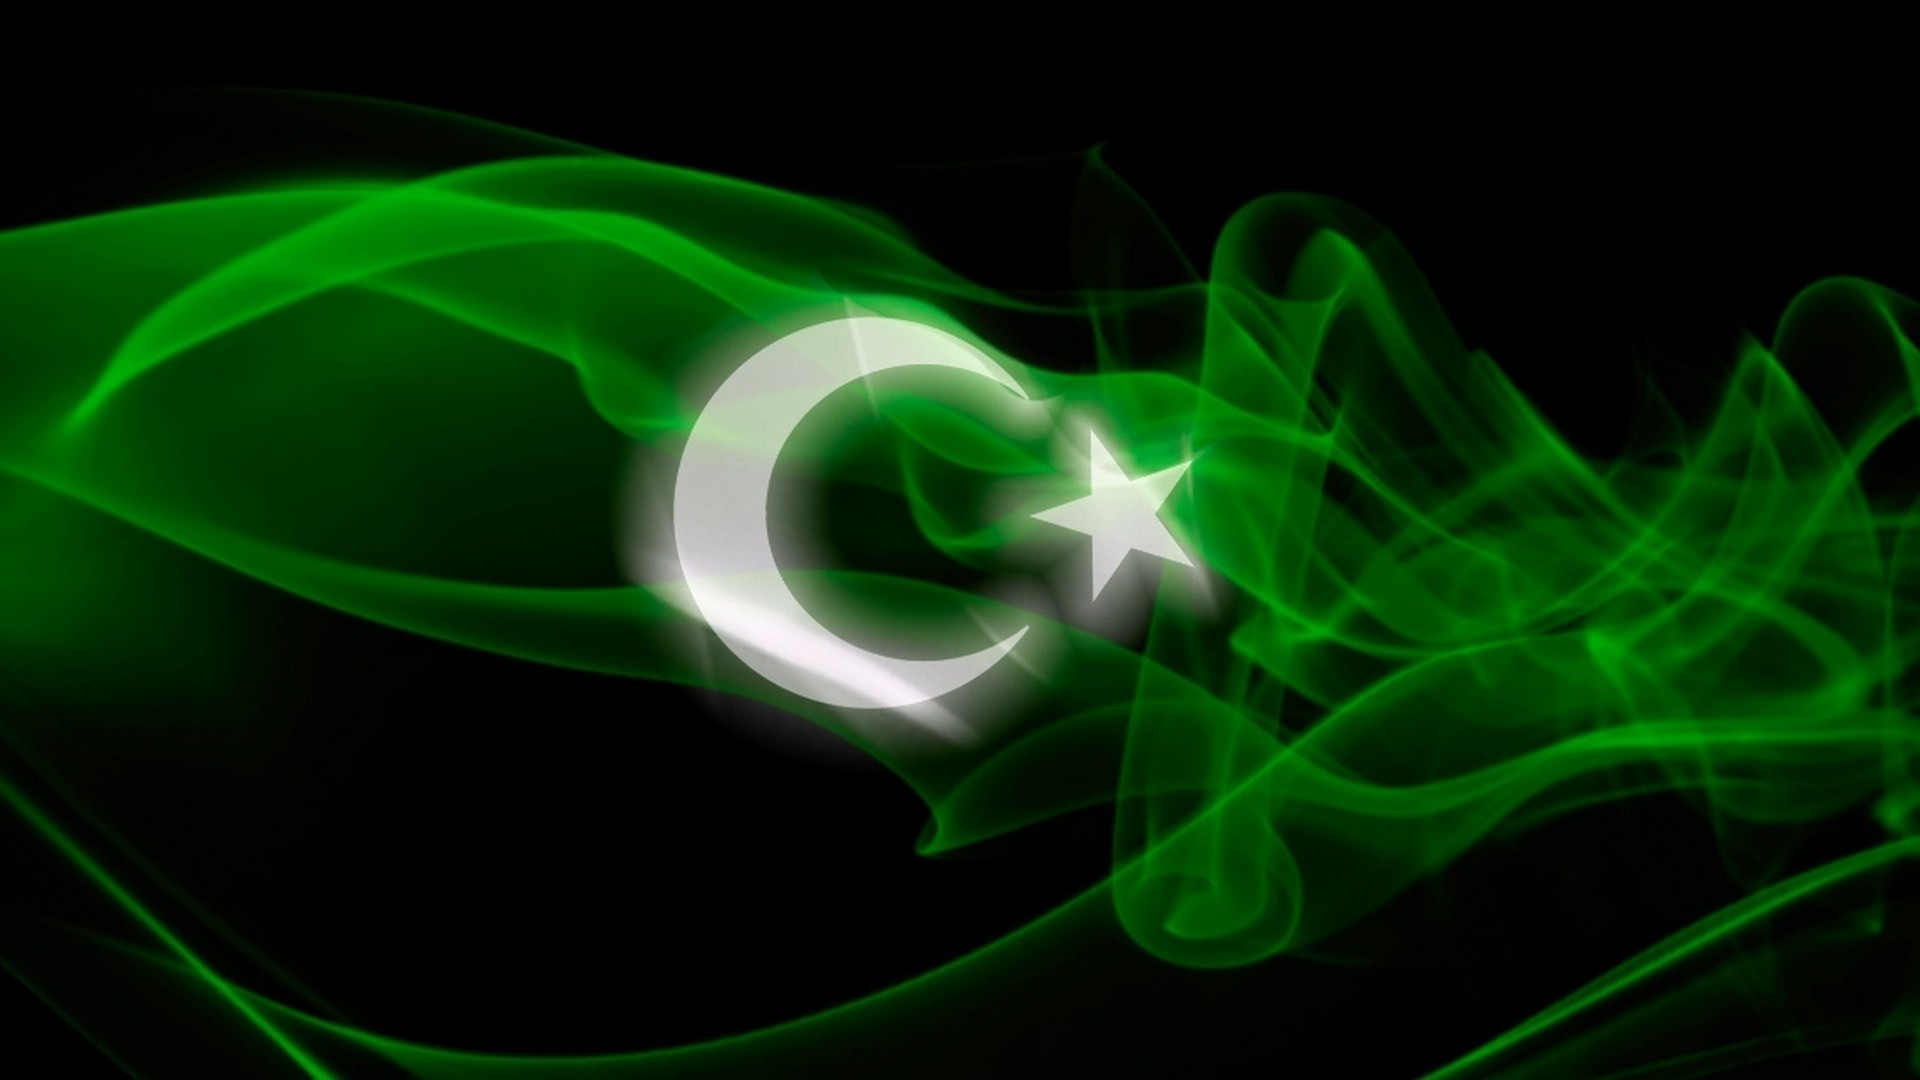 Res: 1920x1080, Pakistani Flag Wallpapers Hd Pictures